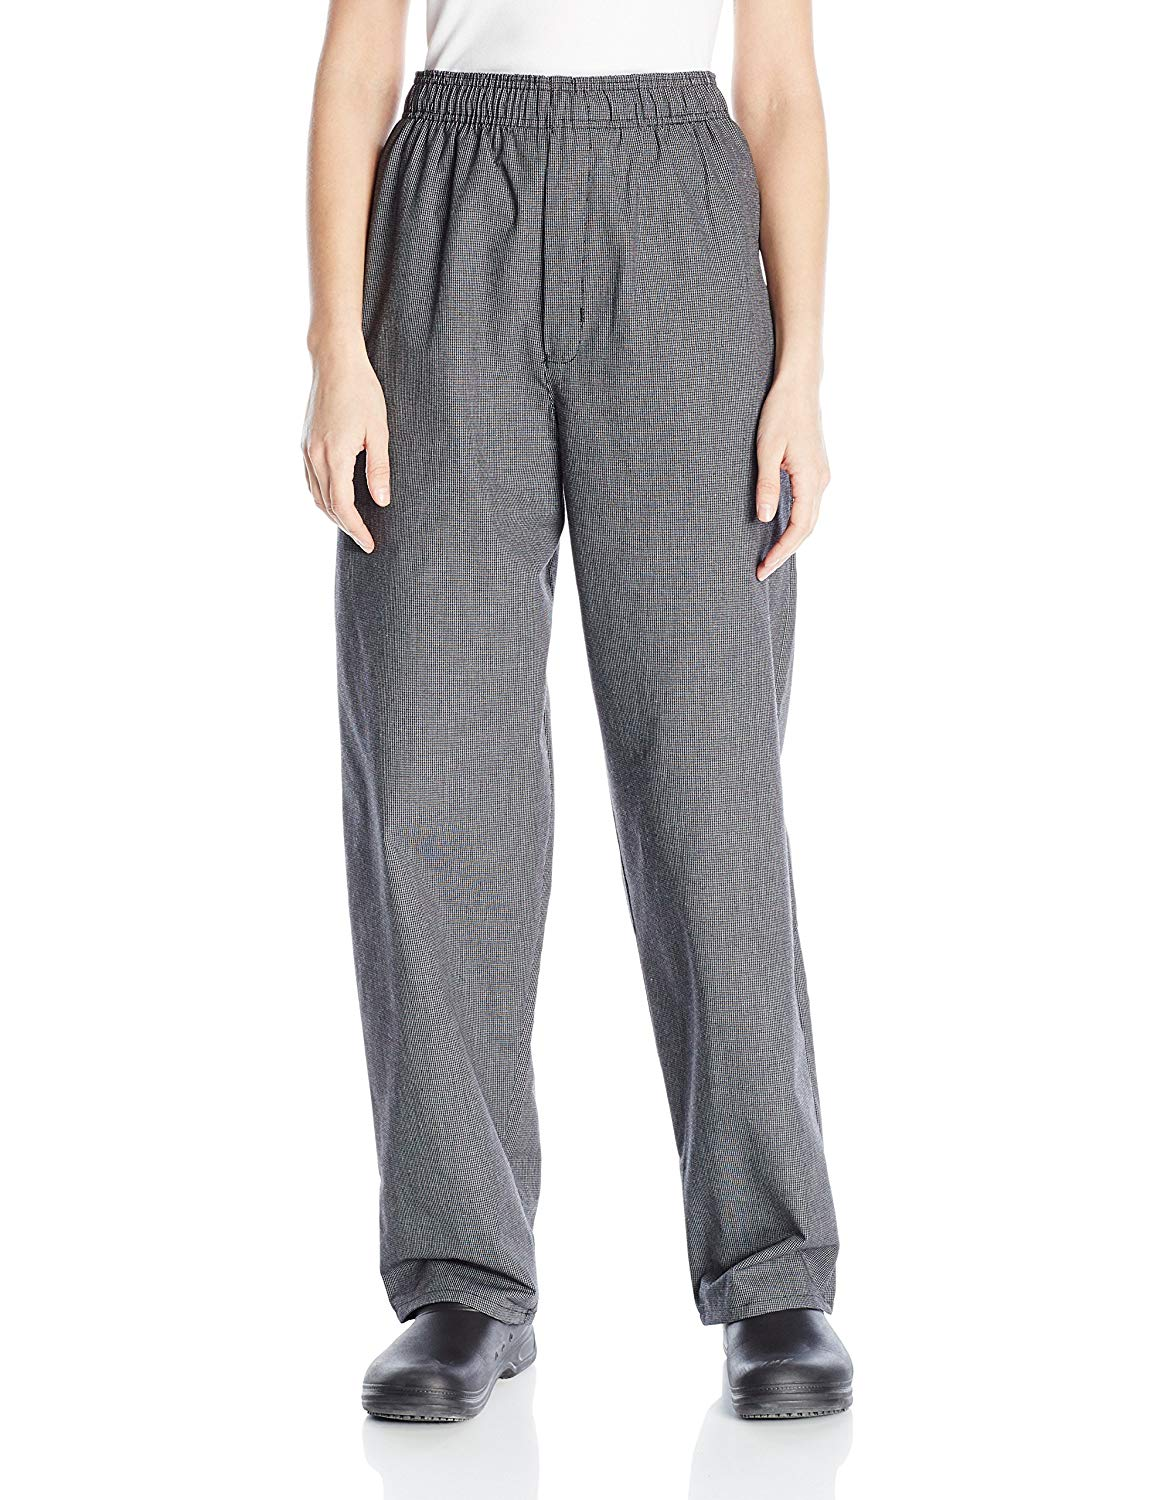 Uncommon Threads Women's Yarn Dyed Baggy Chef Pant